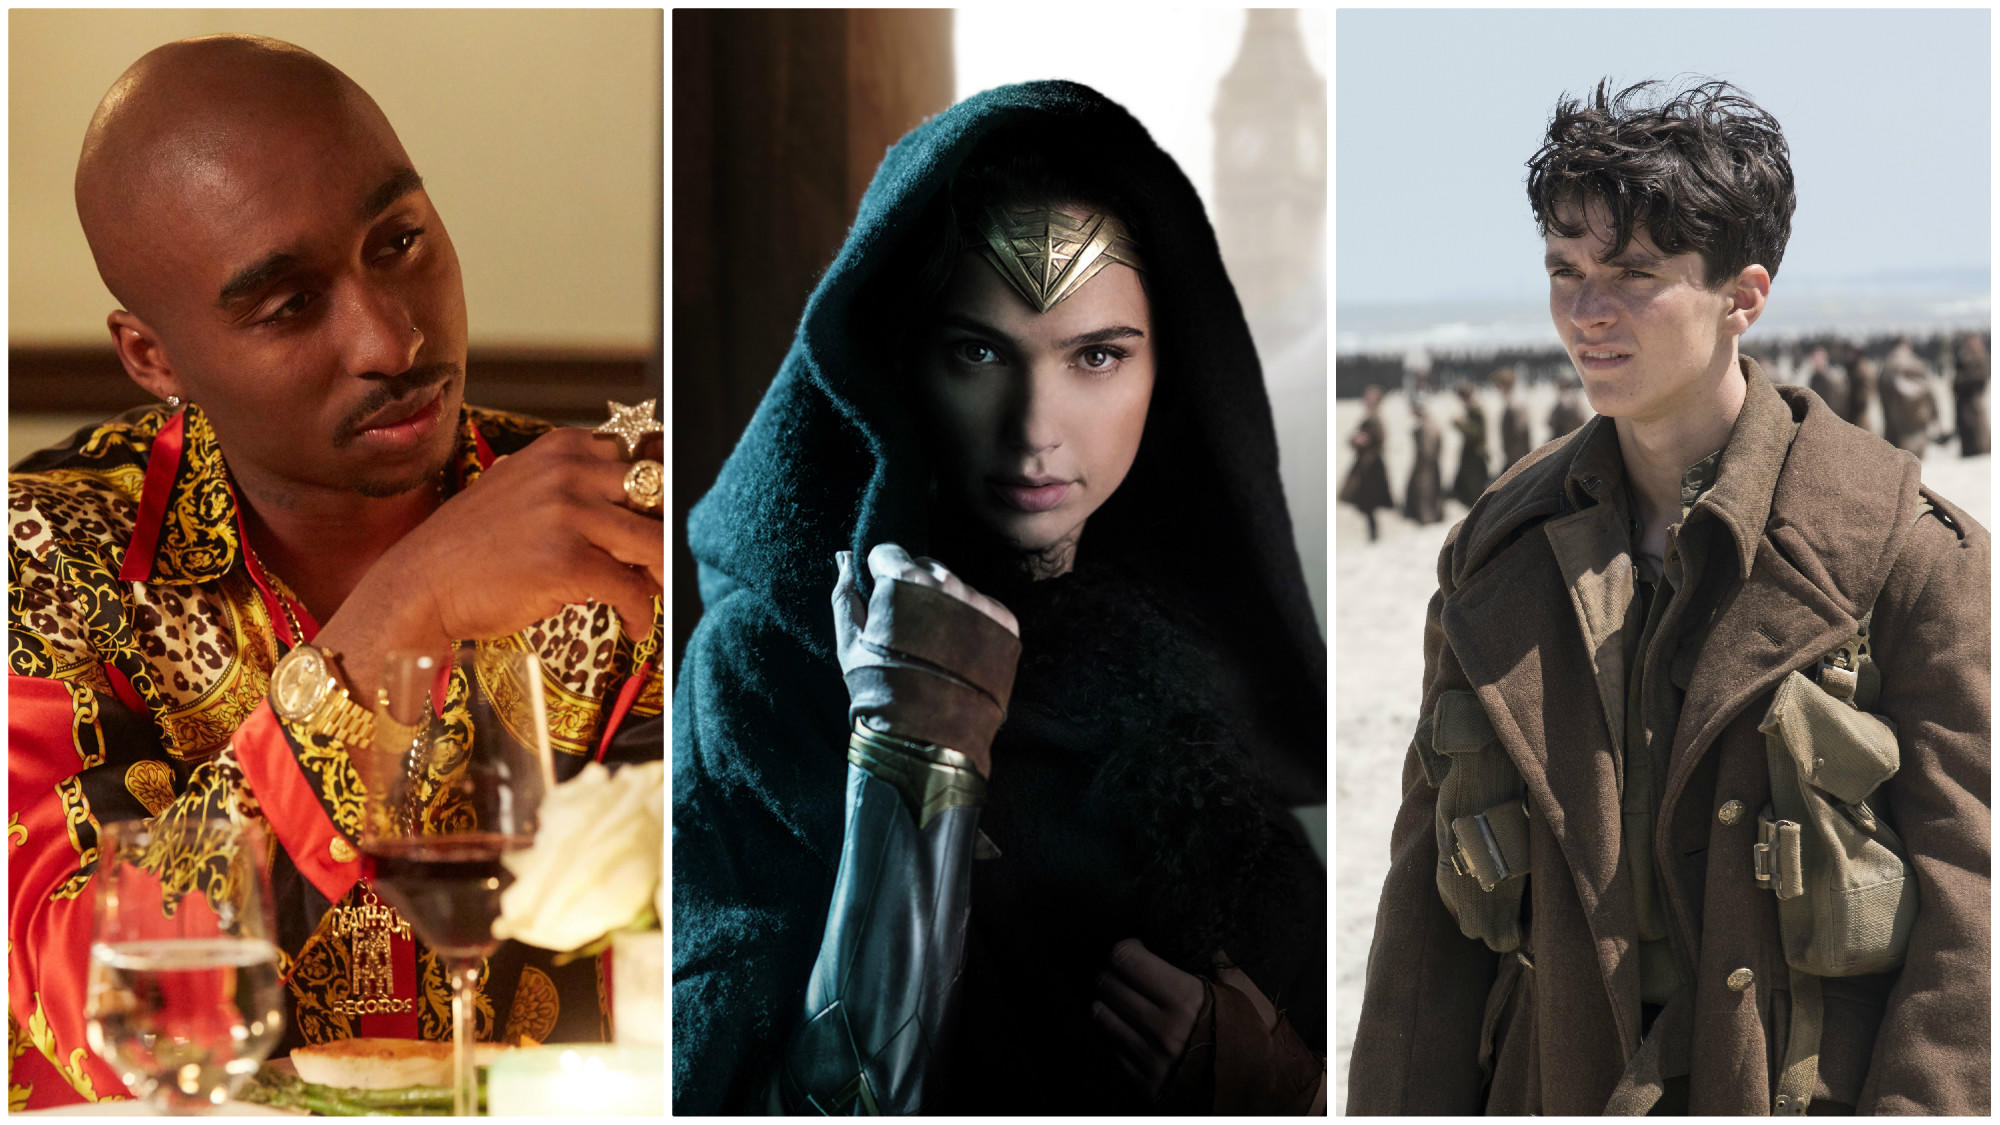 Among the summer's most eagerly awaited films are, from left, 'All Eyez On Me,' 'Wonder Woman' and 'Dunkirk.' (From left: Quantrell Colbert / Codeblack Films; Clay Enos / Warner Bros.; Melinda Sue Gordon / Warner Bros.)